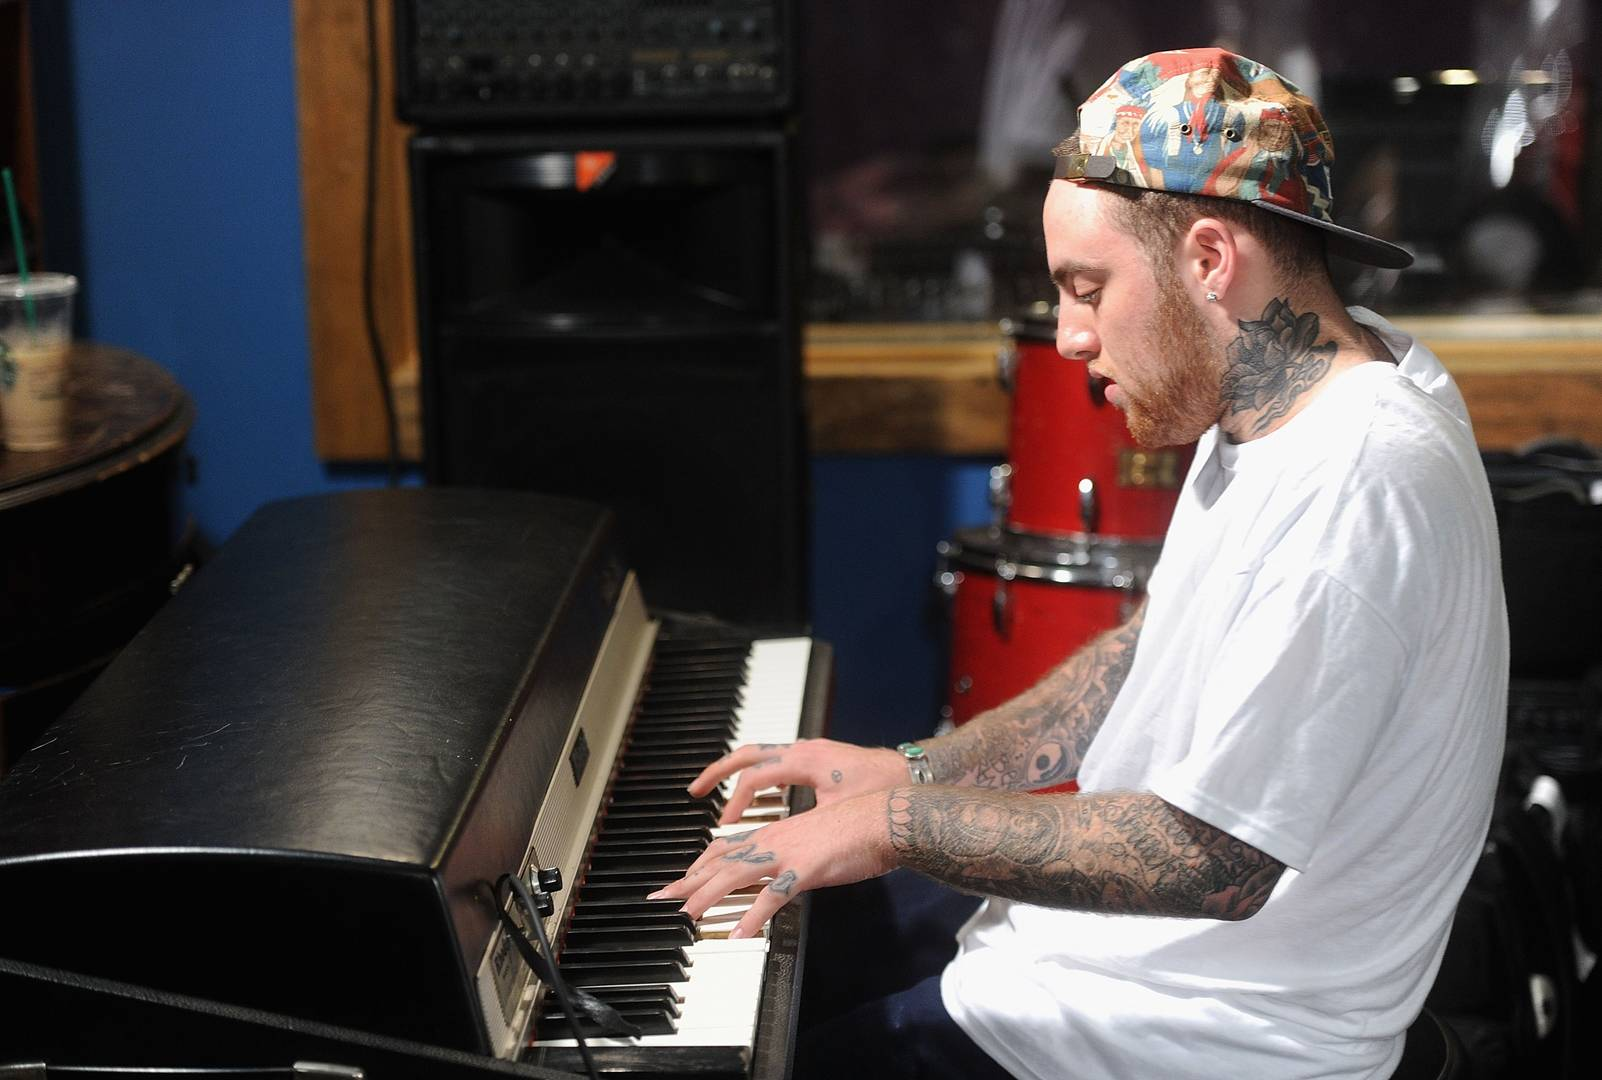 Mac Miller's Alleged Drug Dealer Charged For Selling Him Fentanyl: Report